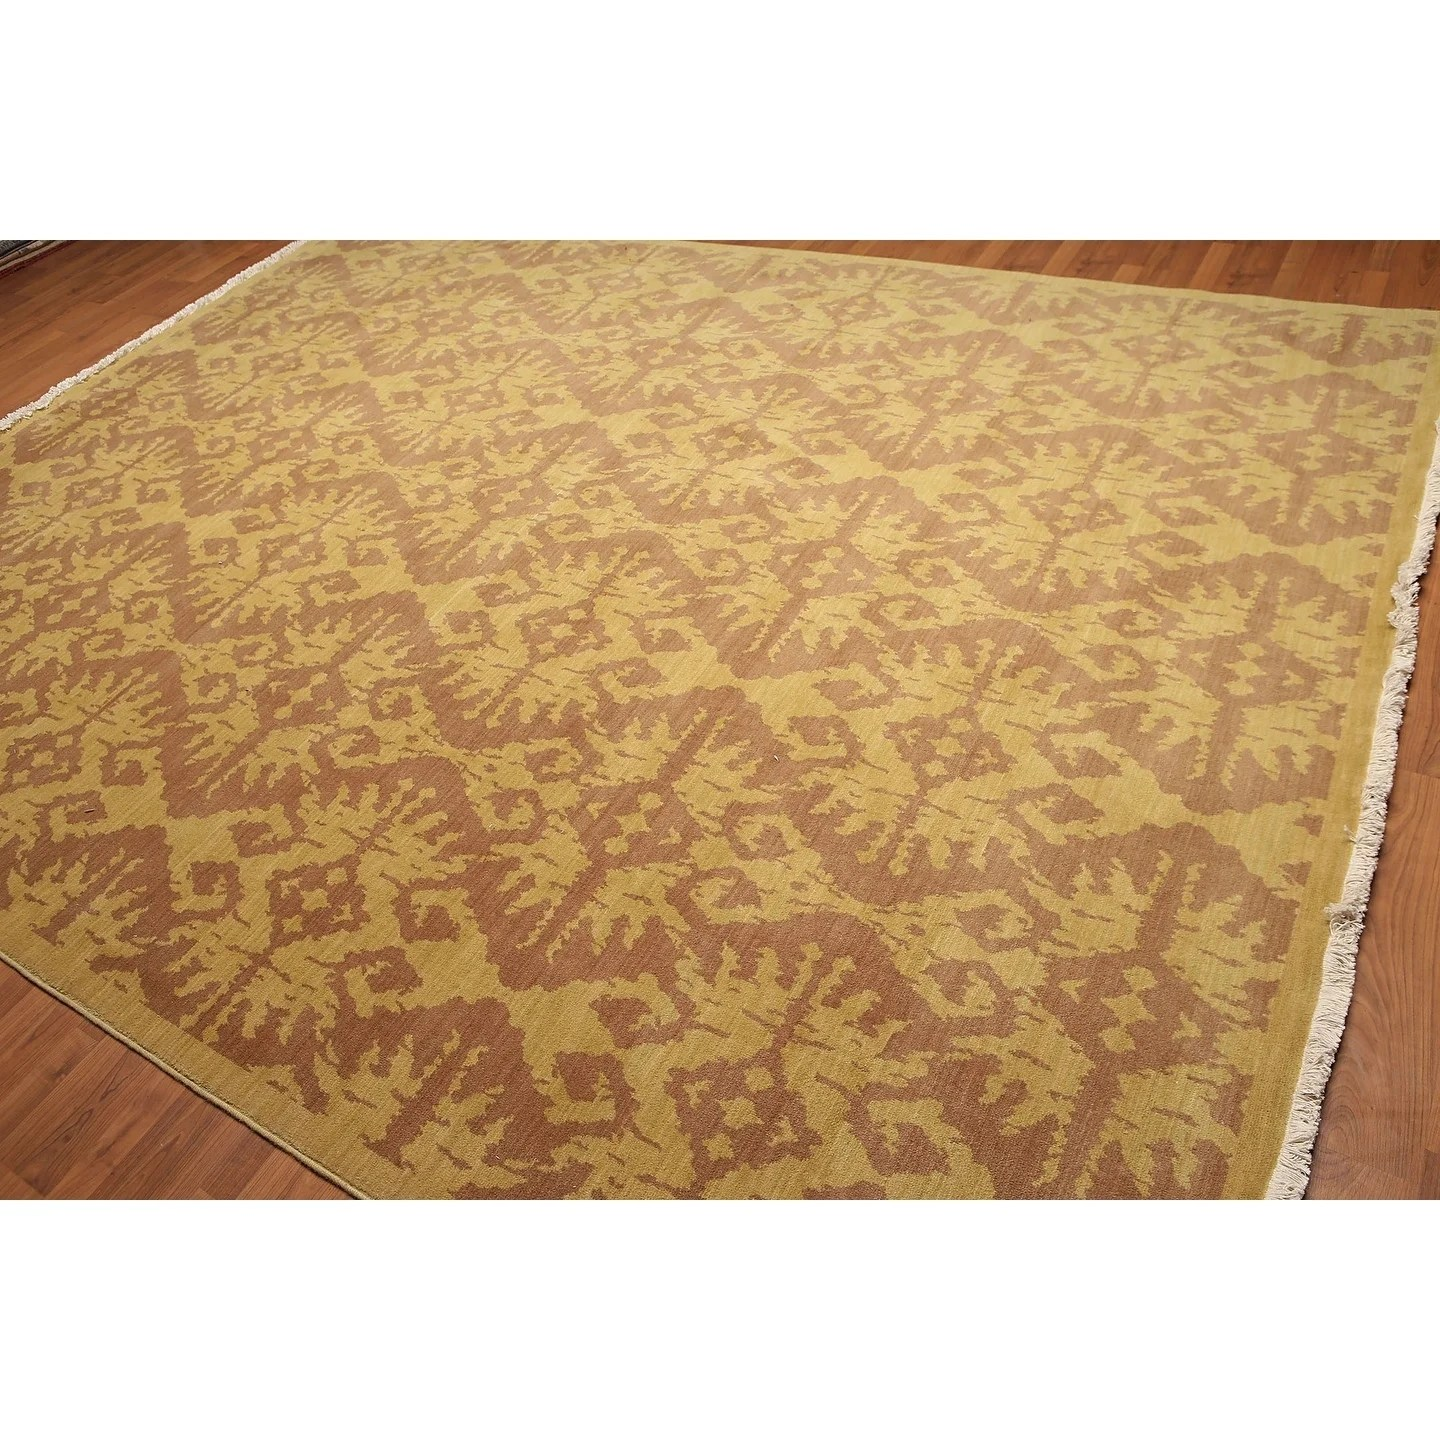 Bold Damask Full Pile Oriental Hand Knotted Area Rug - Multi - 9'x12'